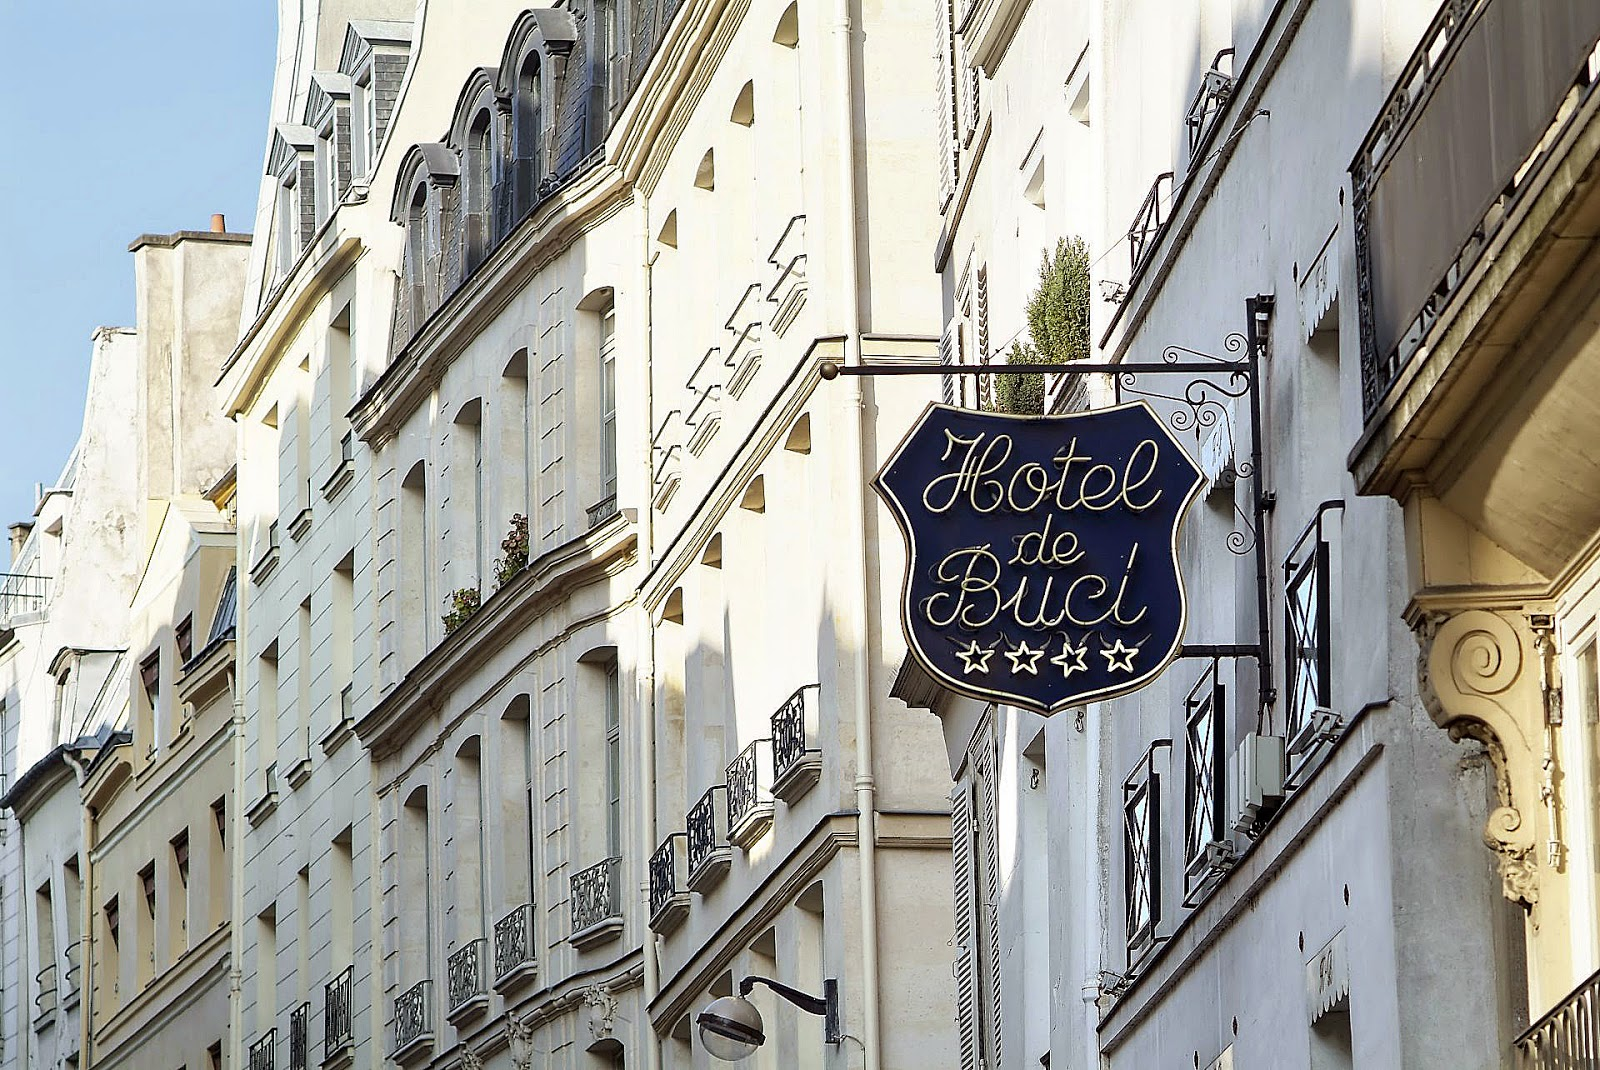 http://www.theaussieflashpacker.com/2015/03/luxury-hotel-review-hotel-de-buci-paris.html